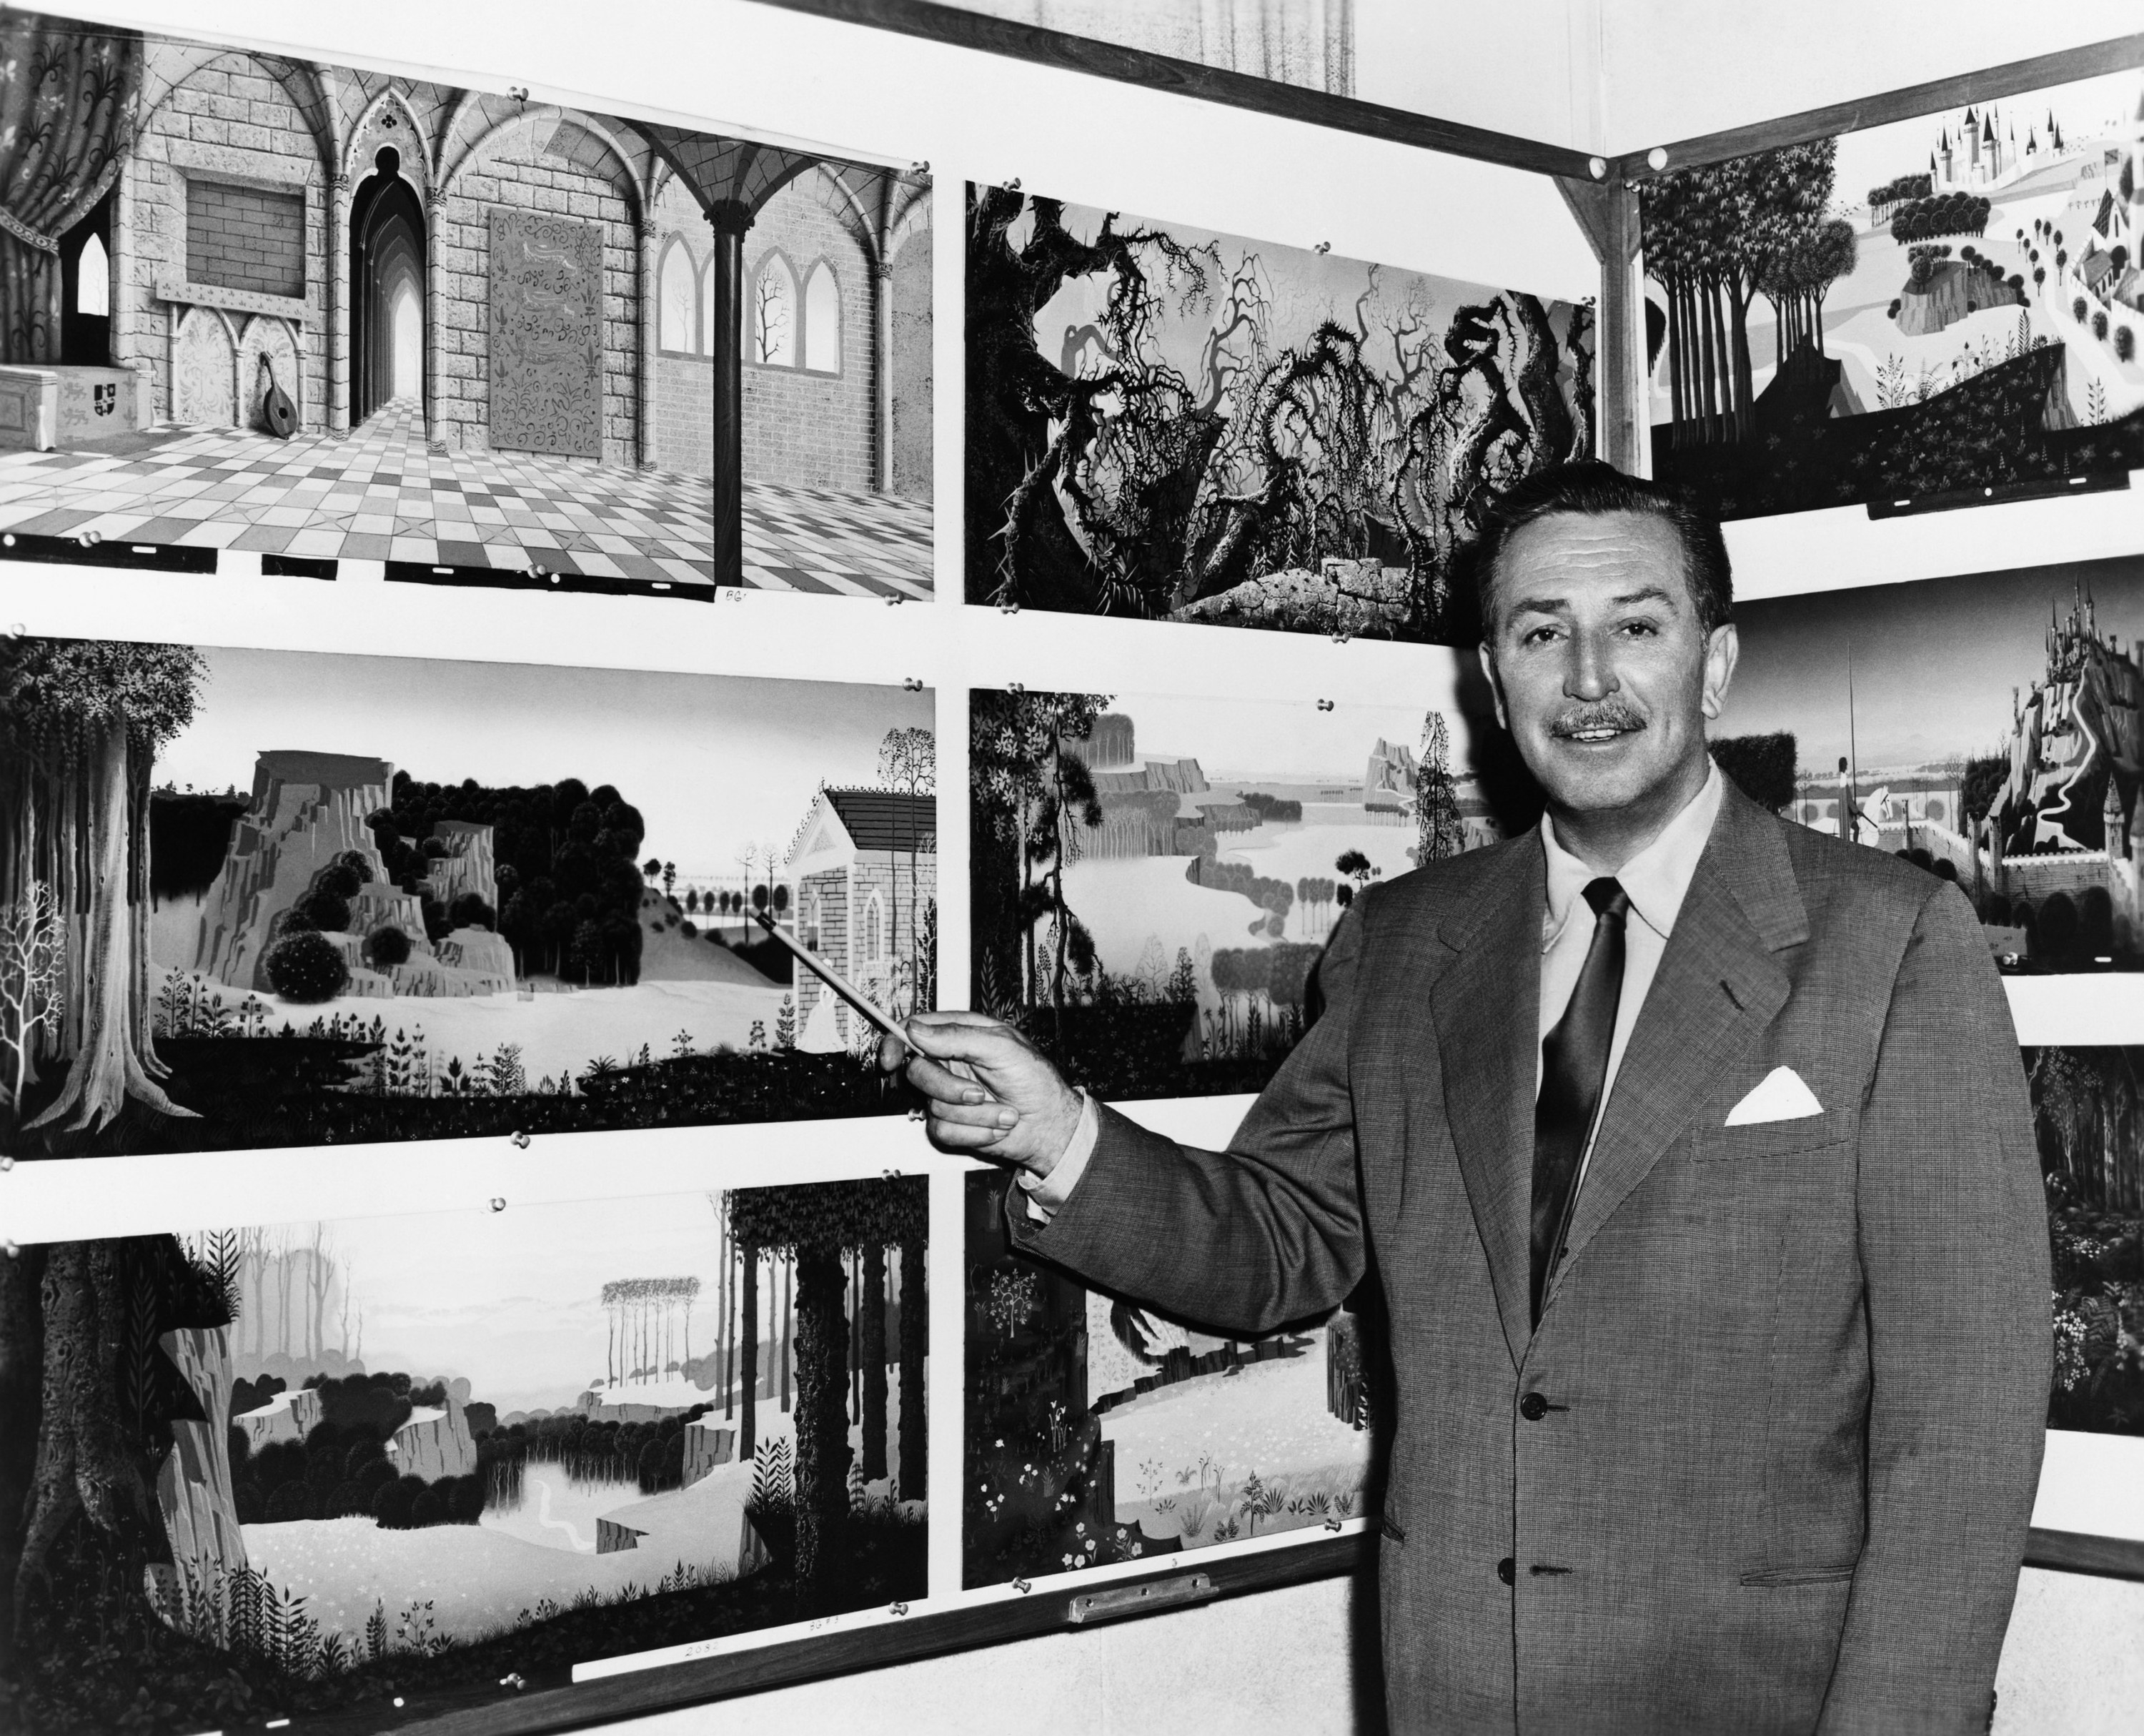 A photo of Walt Disney sharing background paintings from Sleeping Beauty